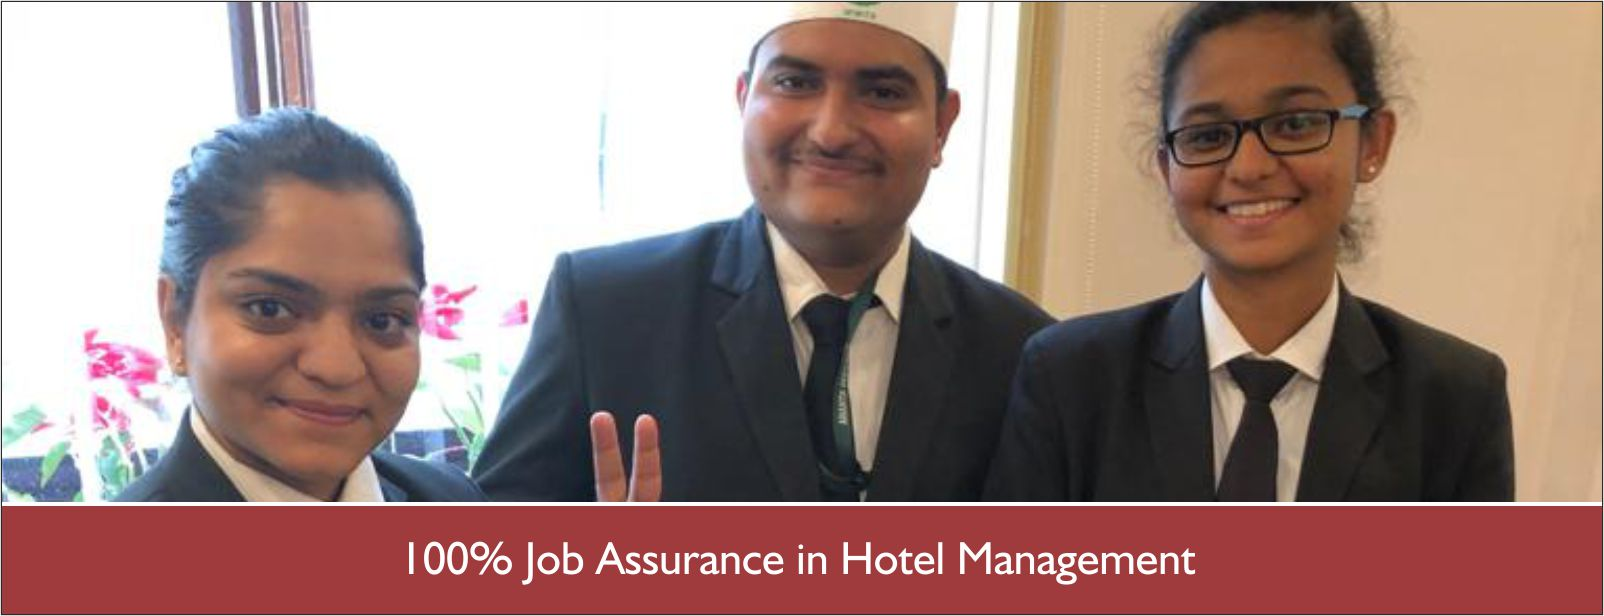 Why hotel management course has 100% placement guarantees?